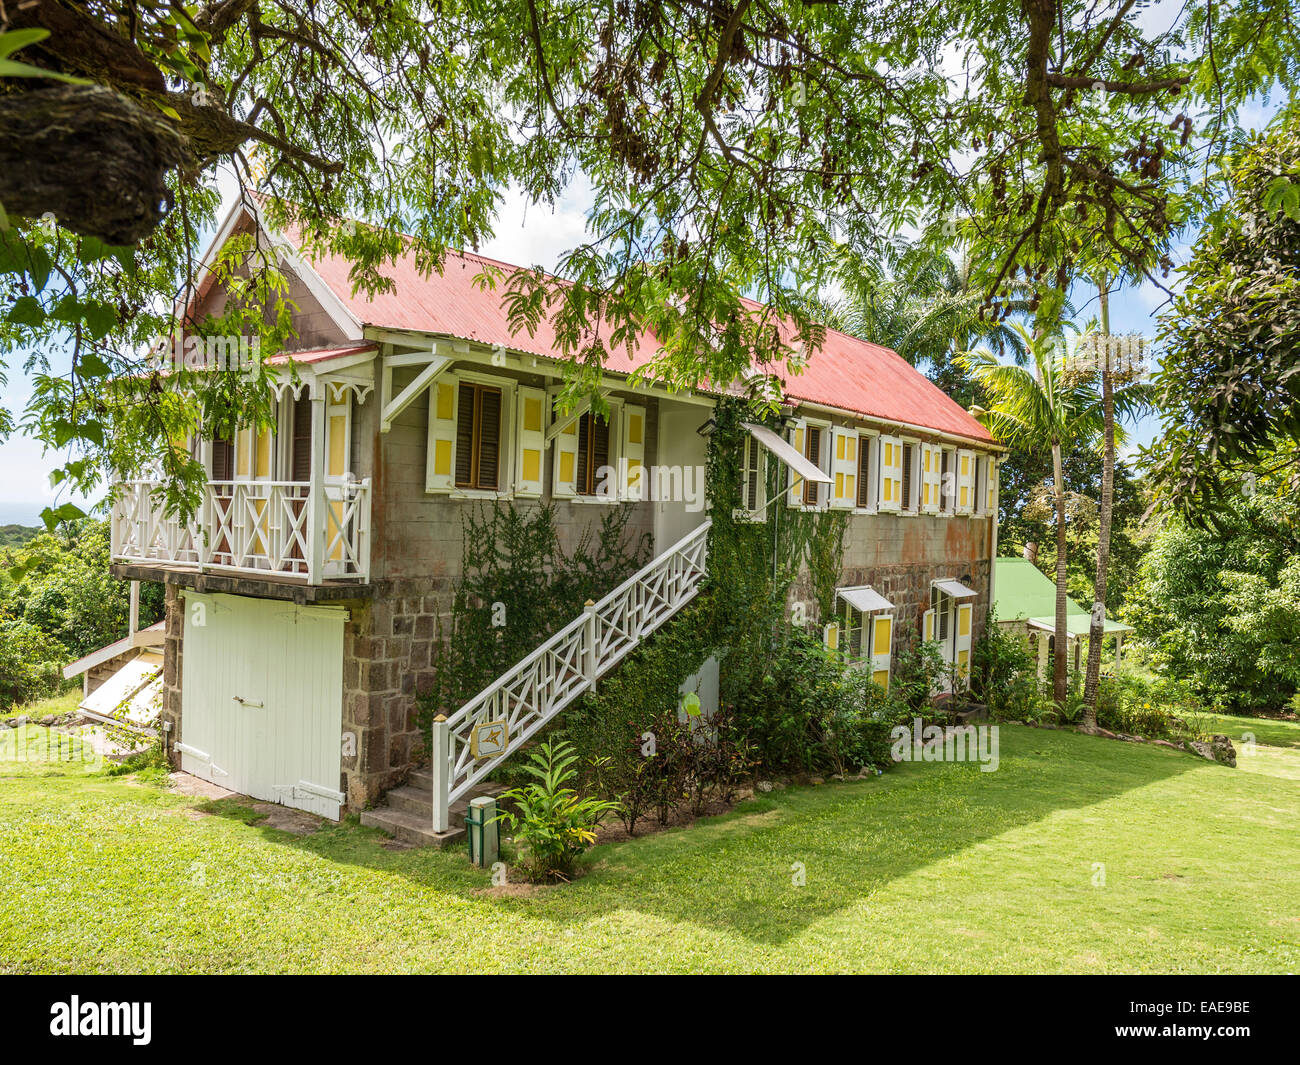 Hermitage Garden Stock Photos Images Alamy Schematic Building And Taken At The Nevis Image